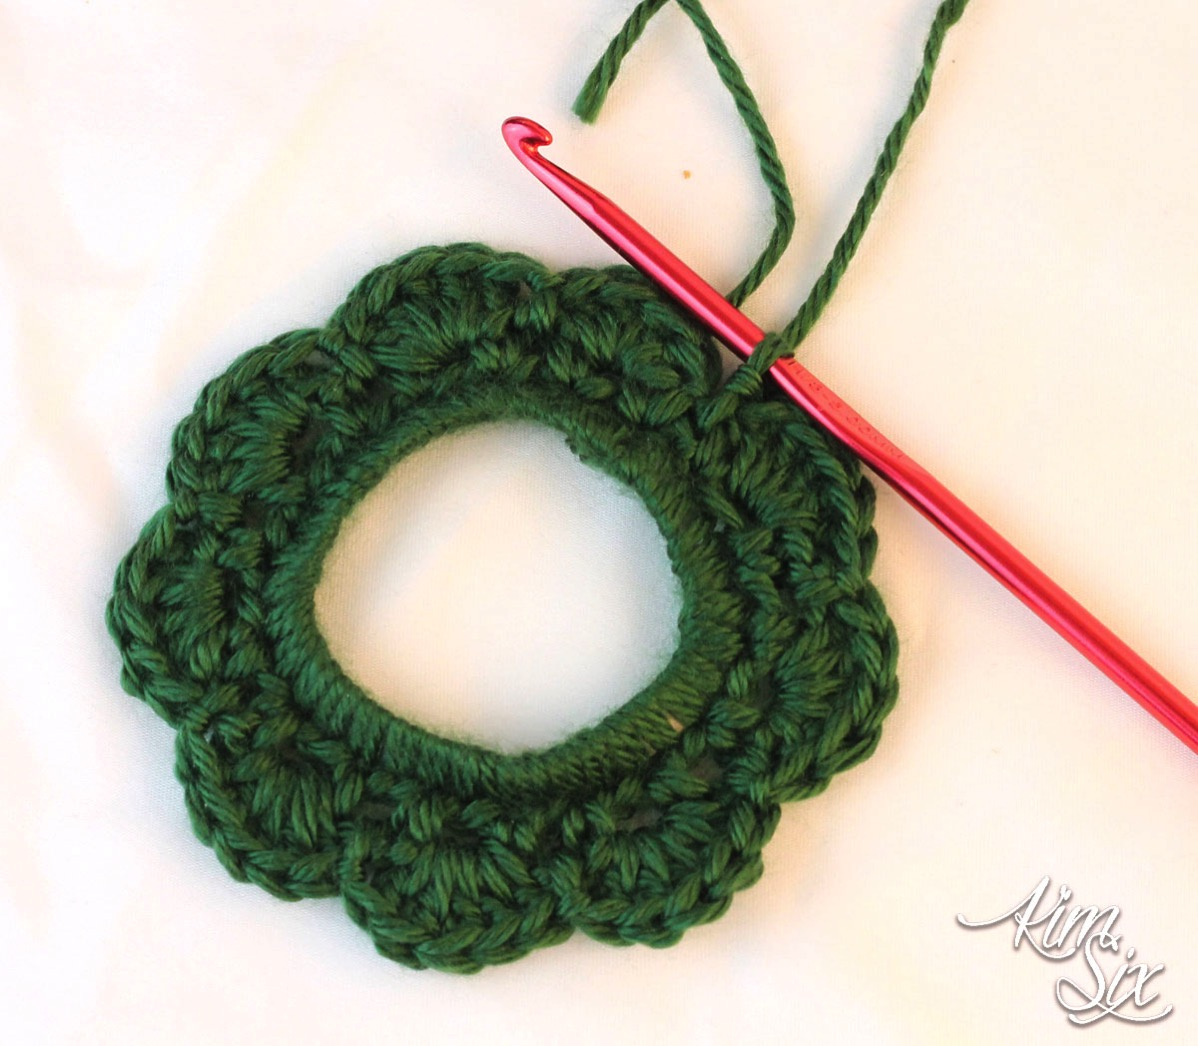 Crochet wreath on plastic 6 pack ring